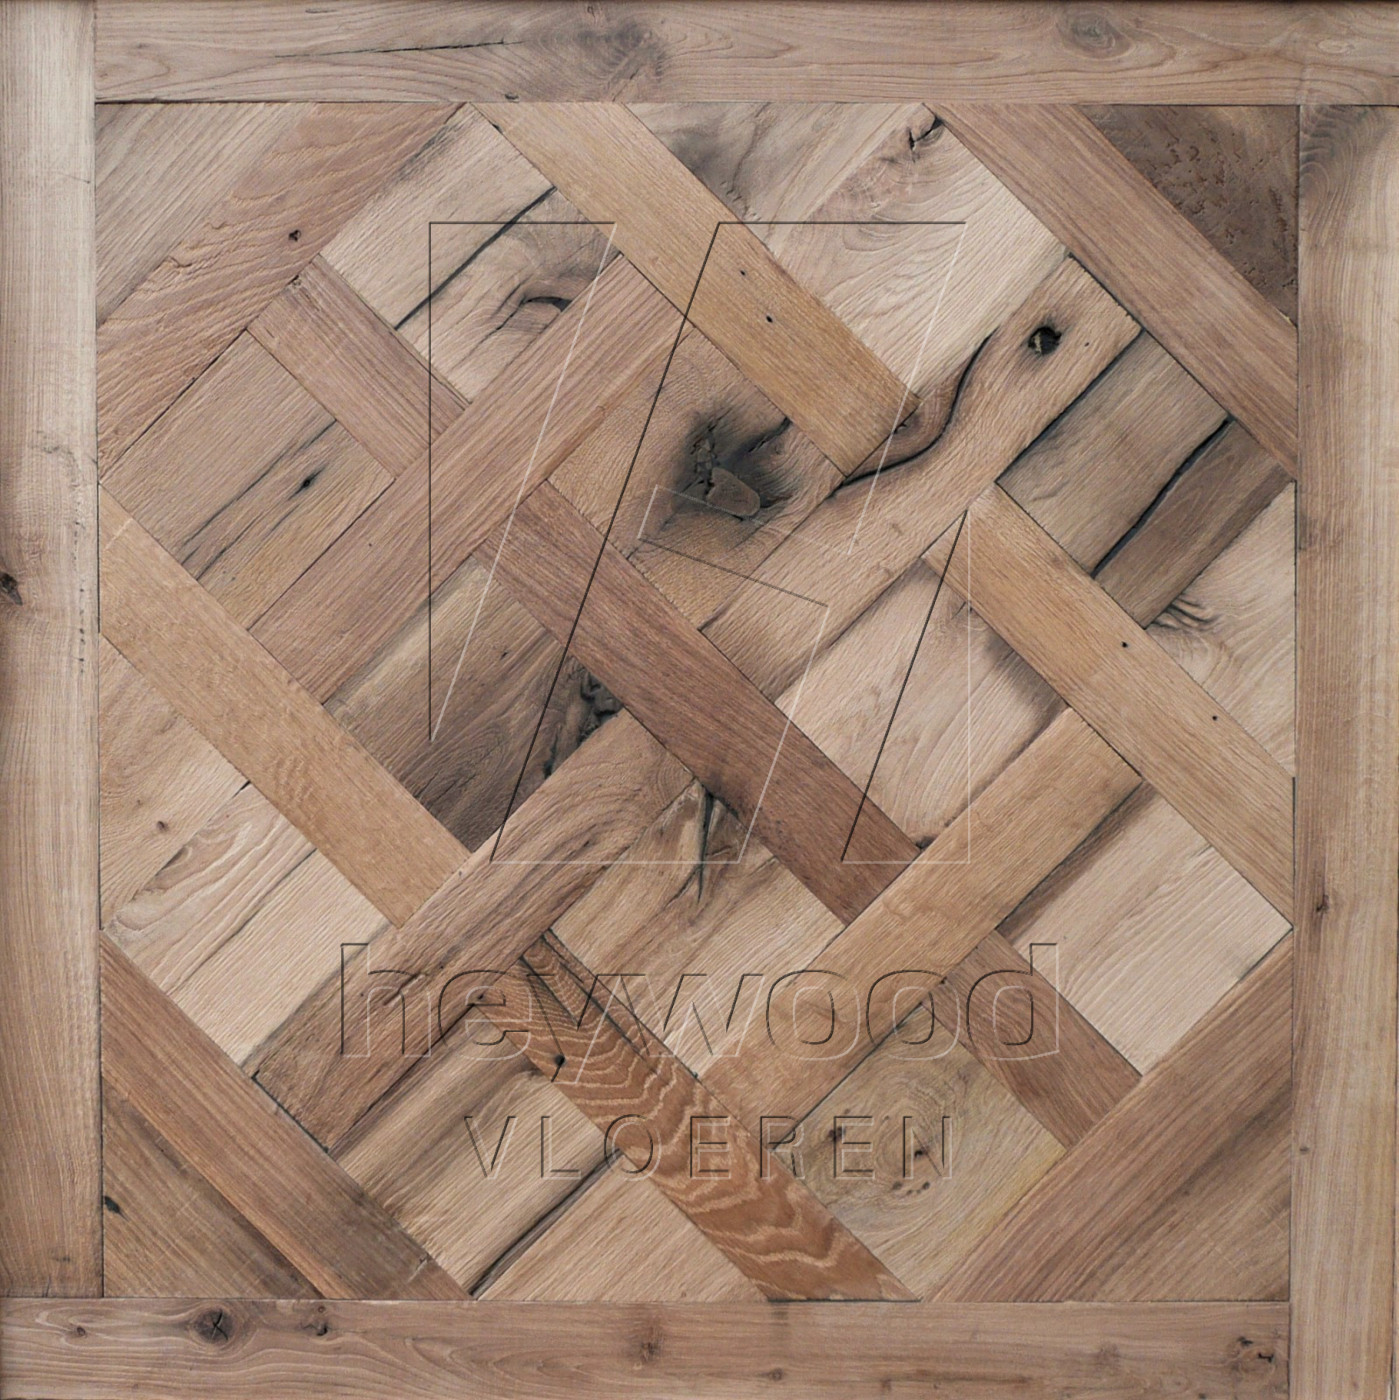 Reclaimed Versailles 'Provence' (unoiled) in Pattern & Panels (Outsides / Insides) of Old Reclaimed Wood